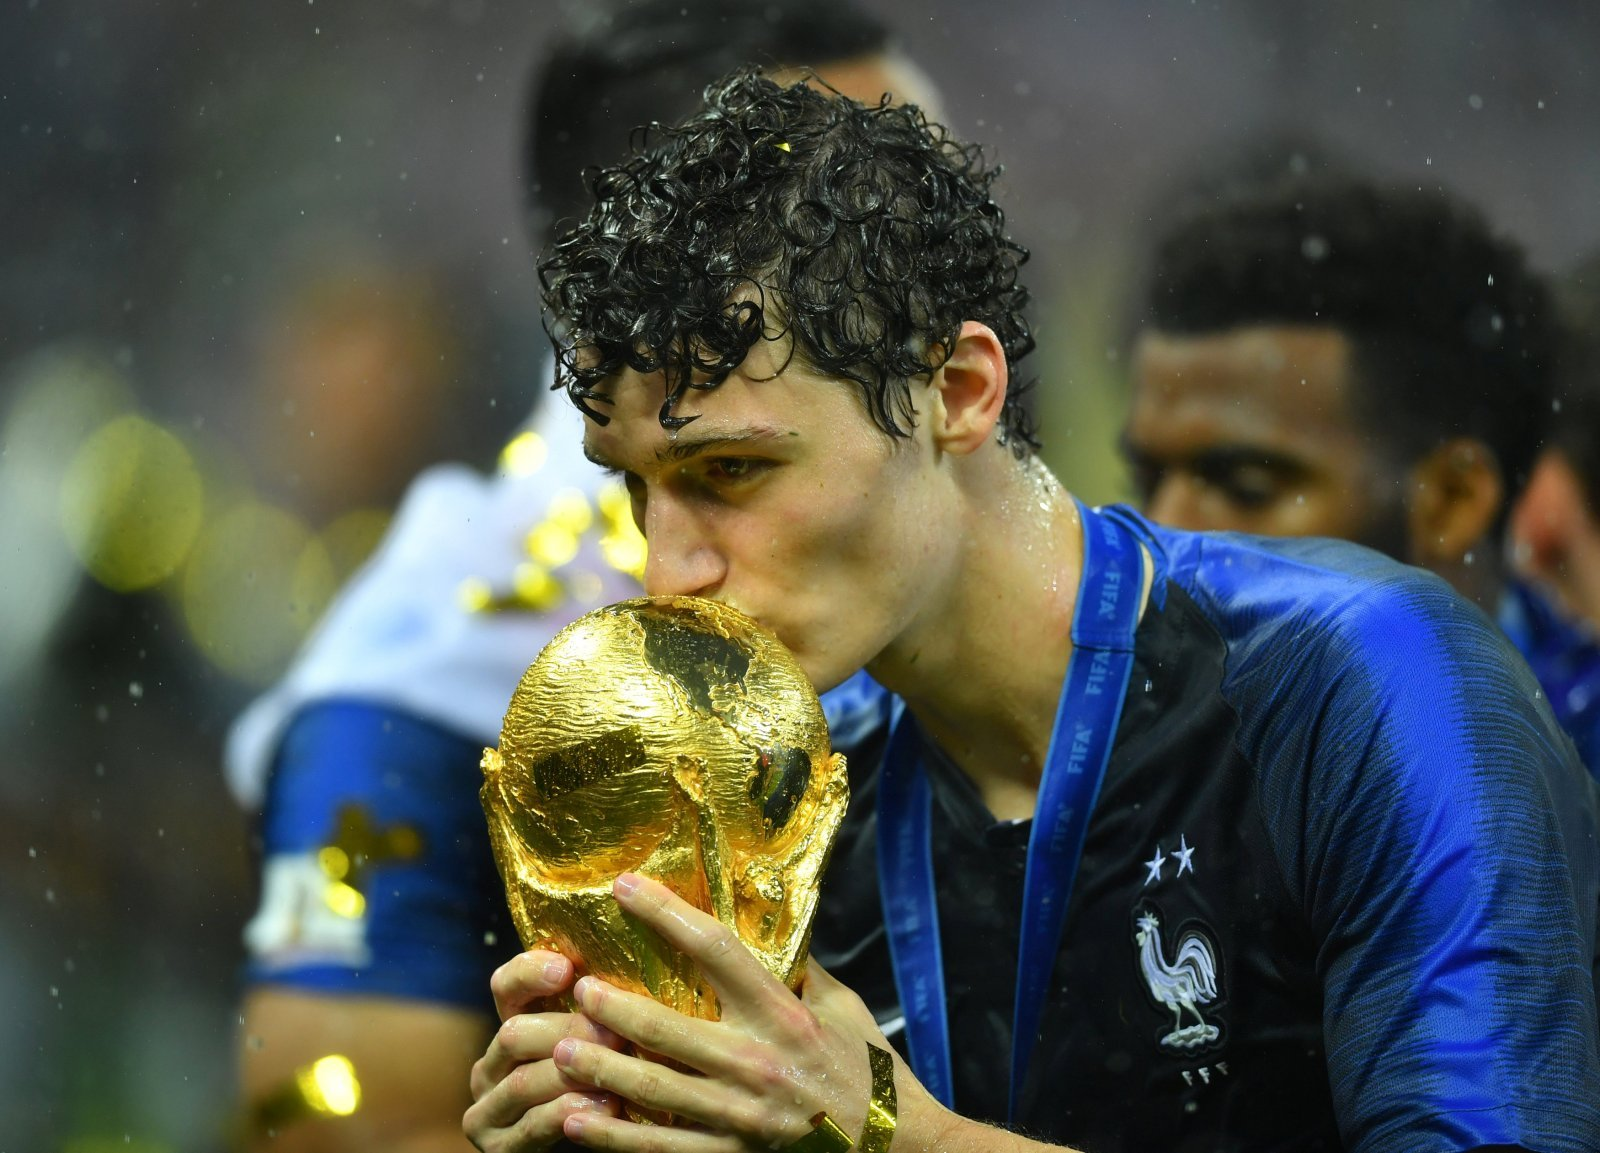 Manchester United should strengthen their backline with addition of this World Cup winner